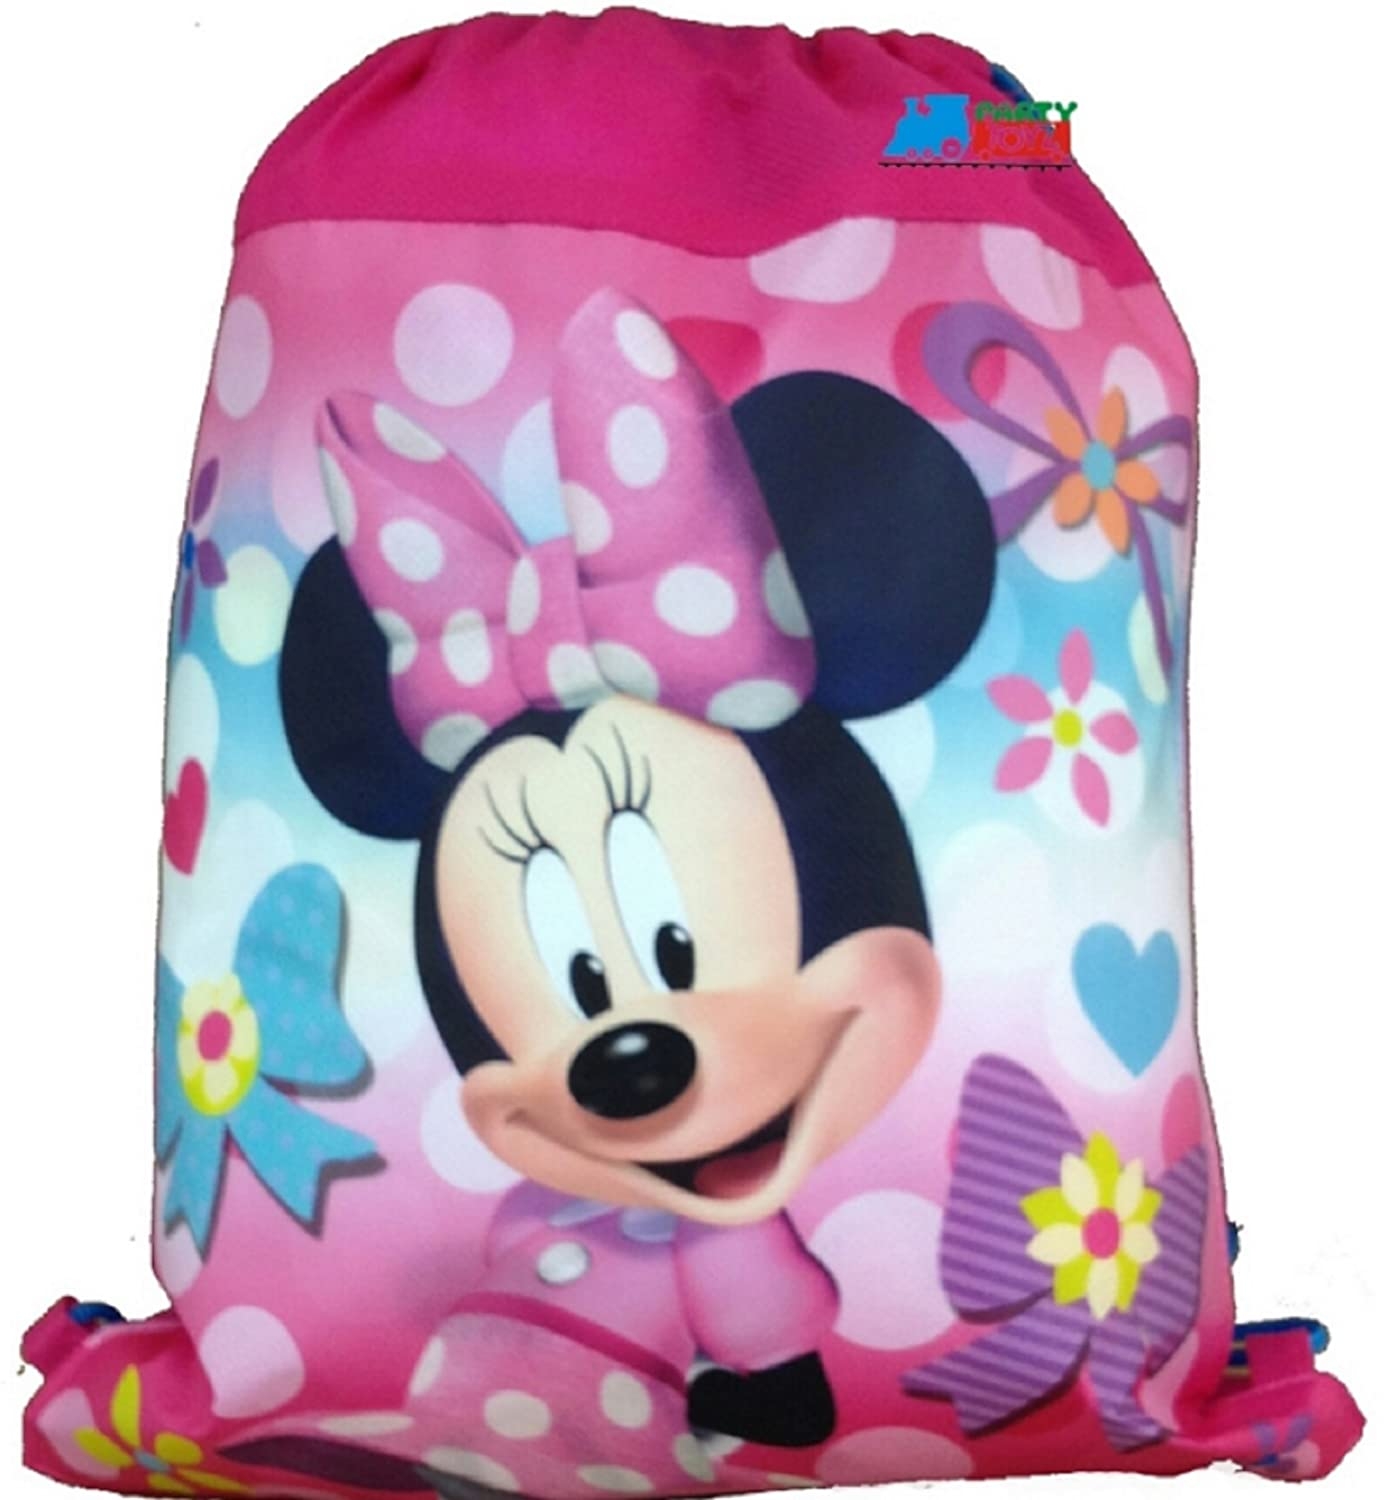 New Minnie Bowtique Non Woven Sling Bag with Hangtag by Disney by Disney   B00FADNKVS